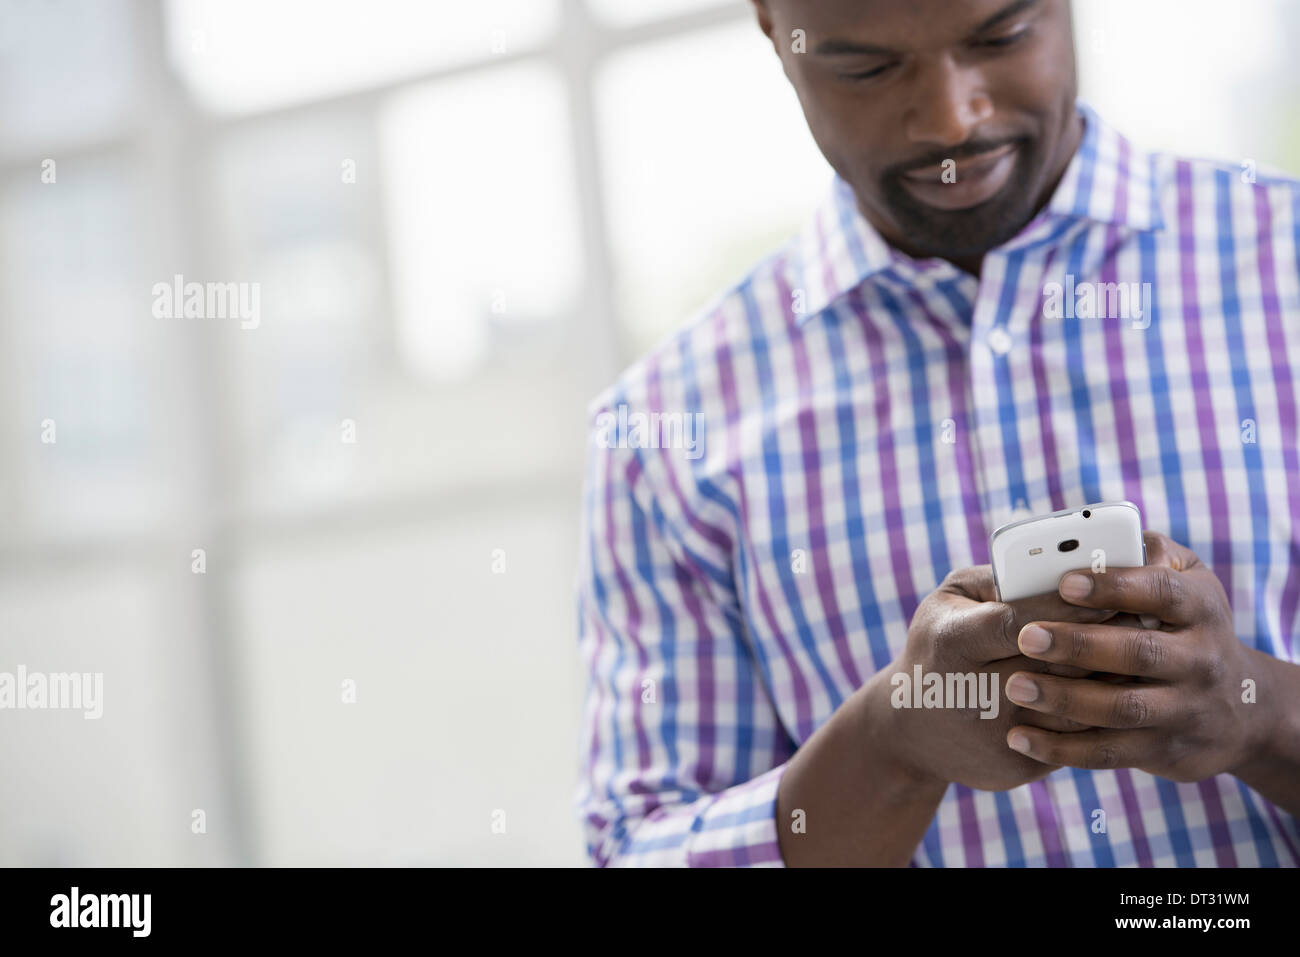 Professionals in the office A light and airy place of work A man in a checked shirt using a smart phone - Stock Image